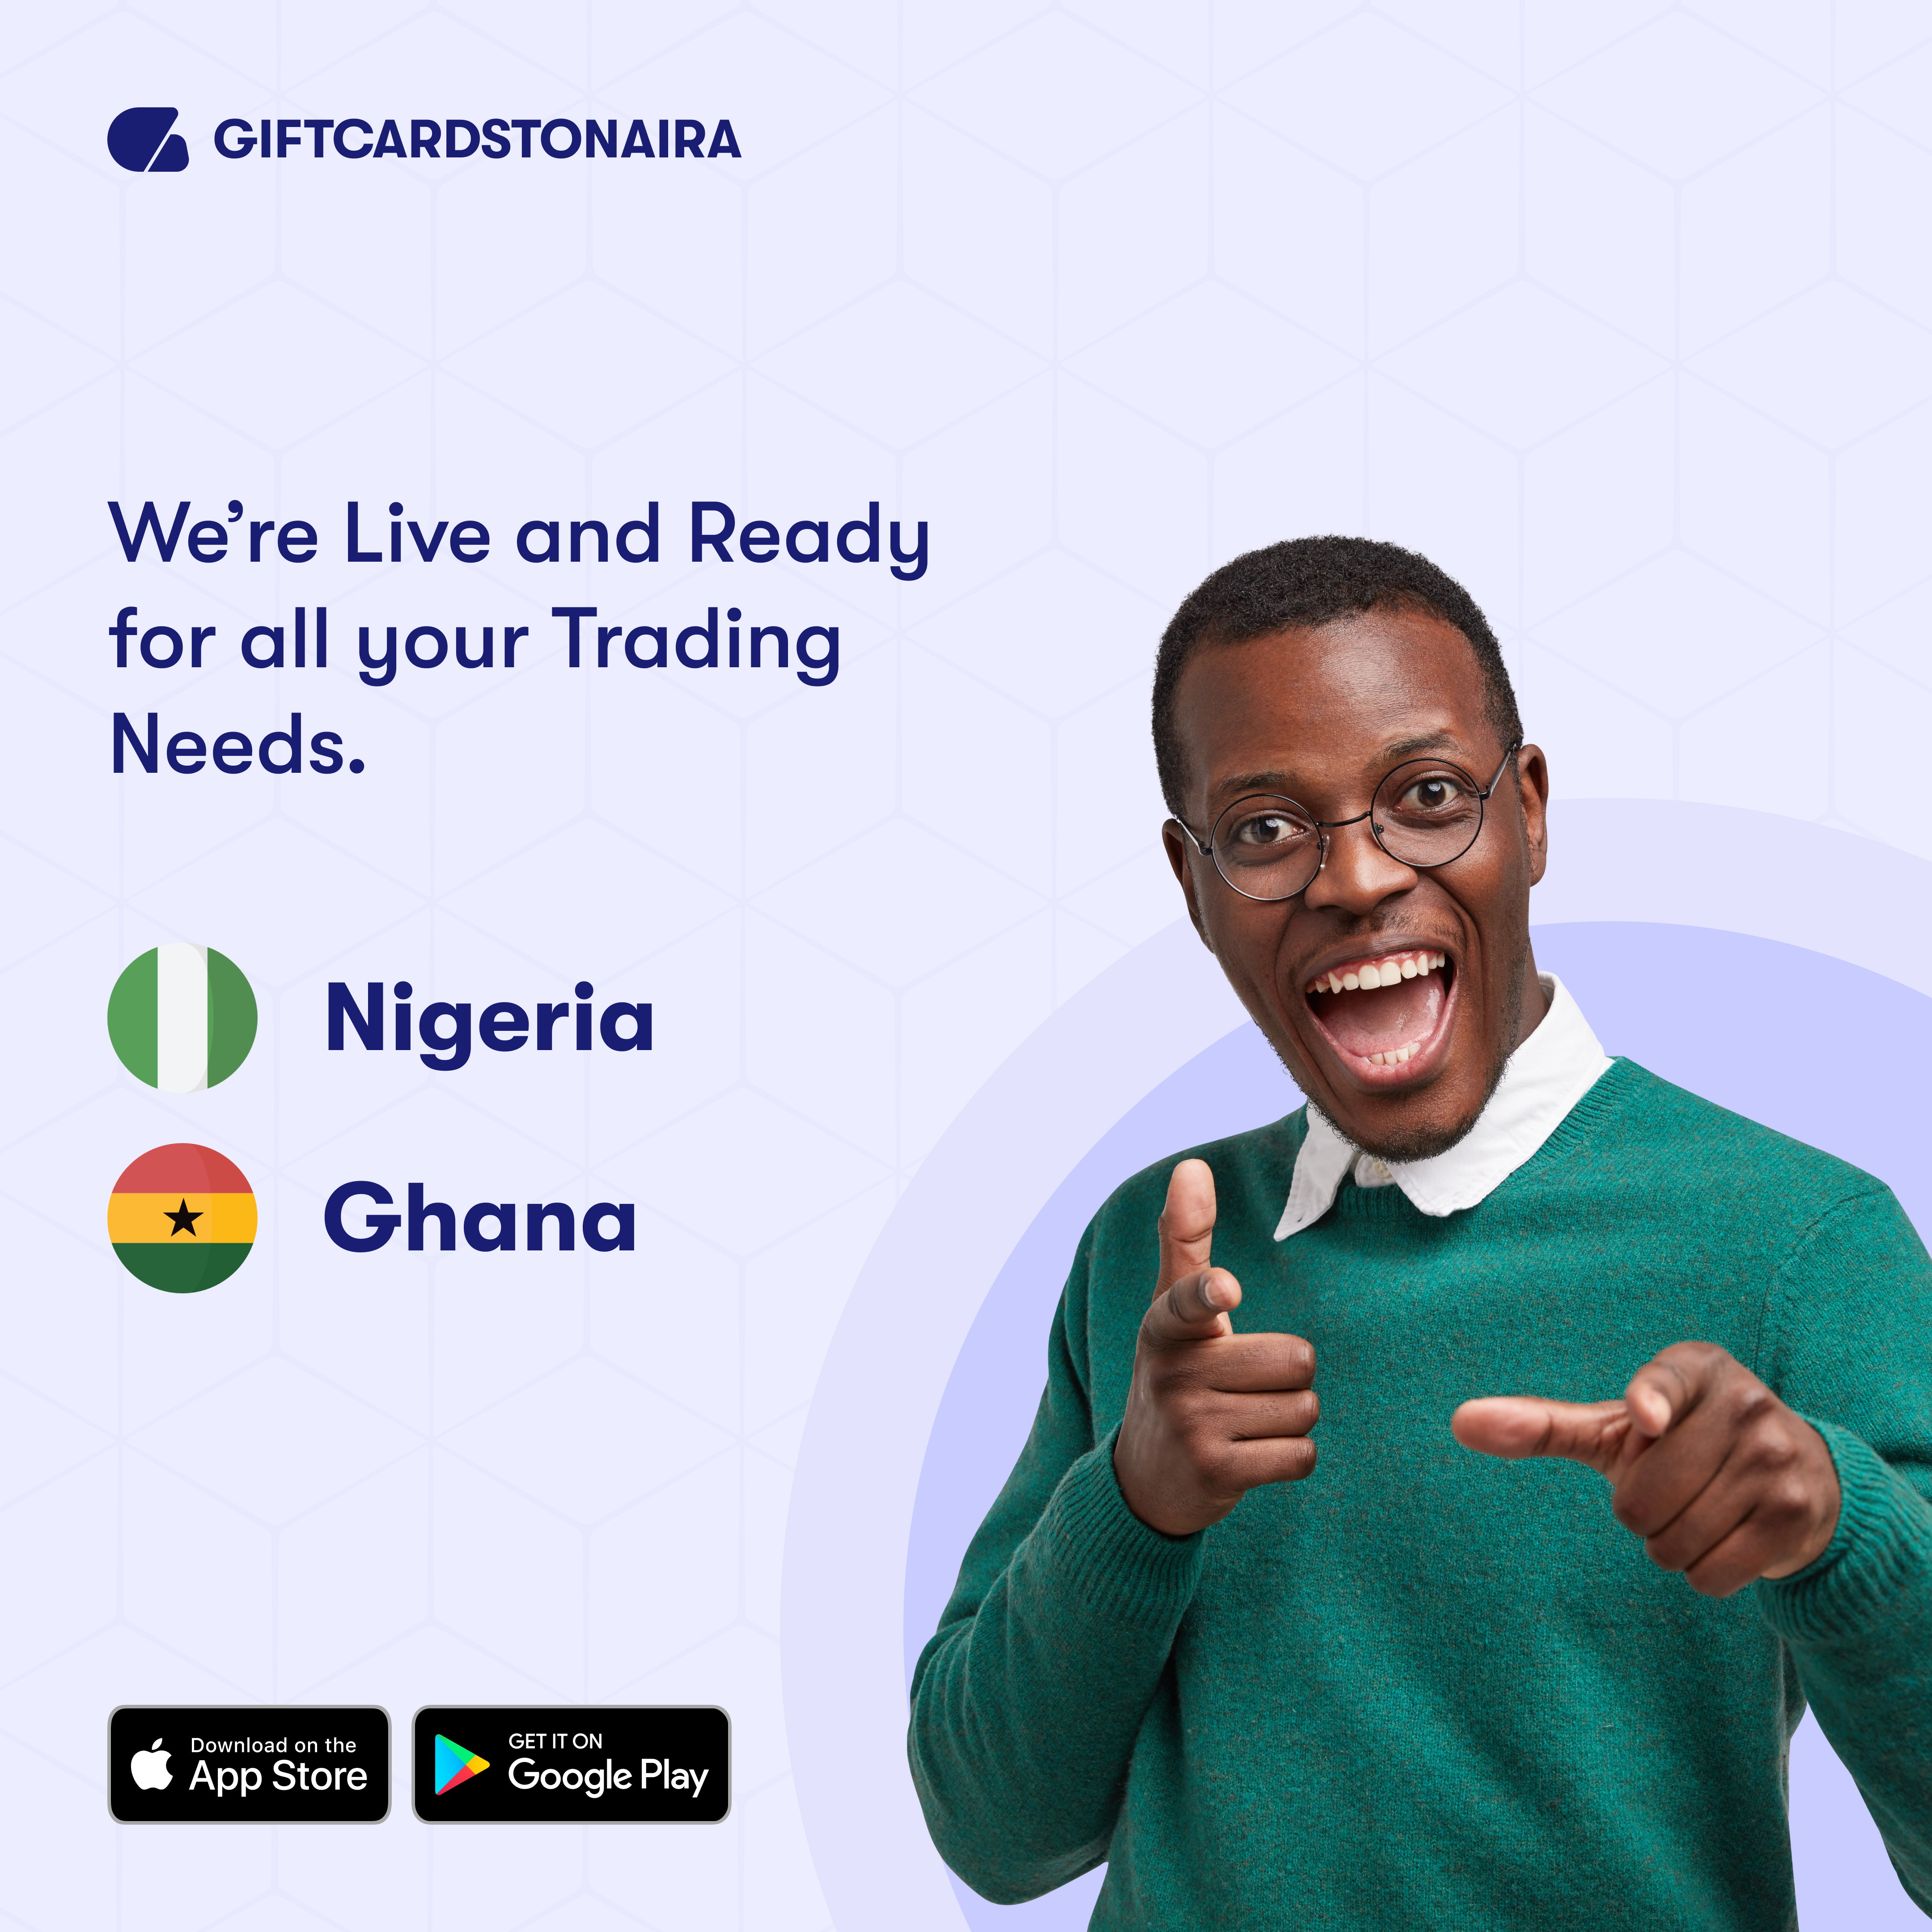 Giftcardstonaira Launches A Gift Card Trading App For West African Customers